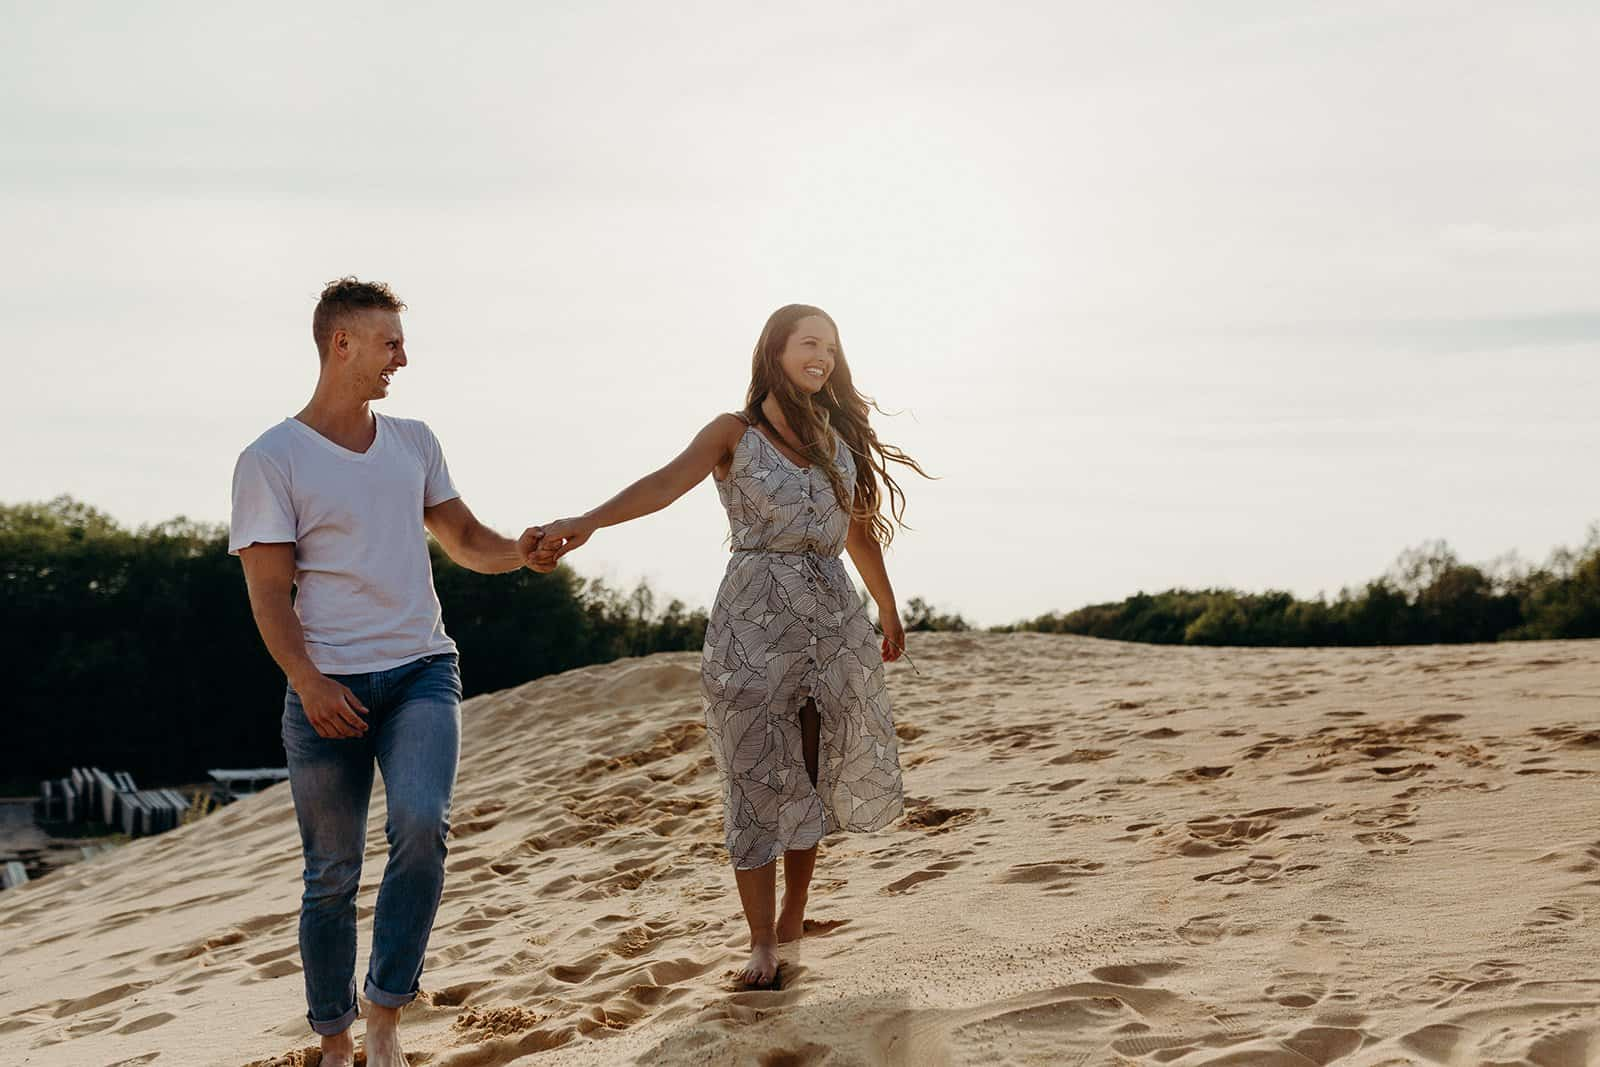 Ohio Sand Dunes Engagement | Addison + Morgan 152